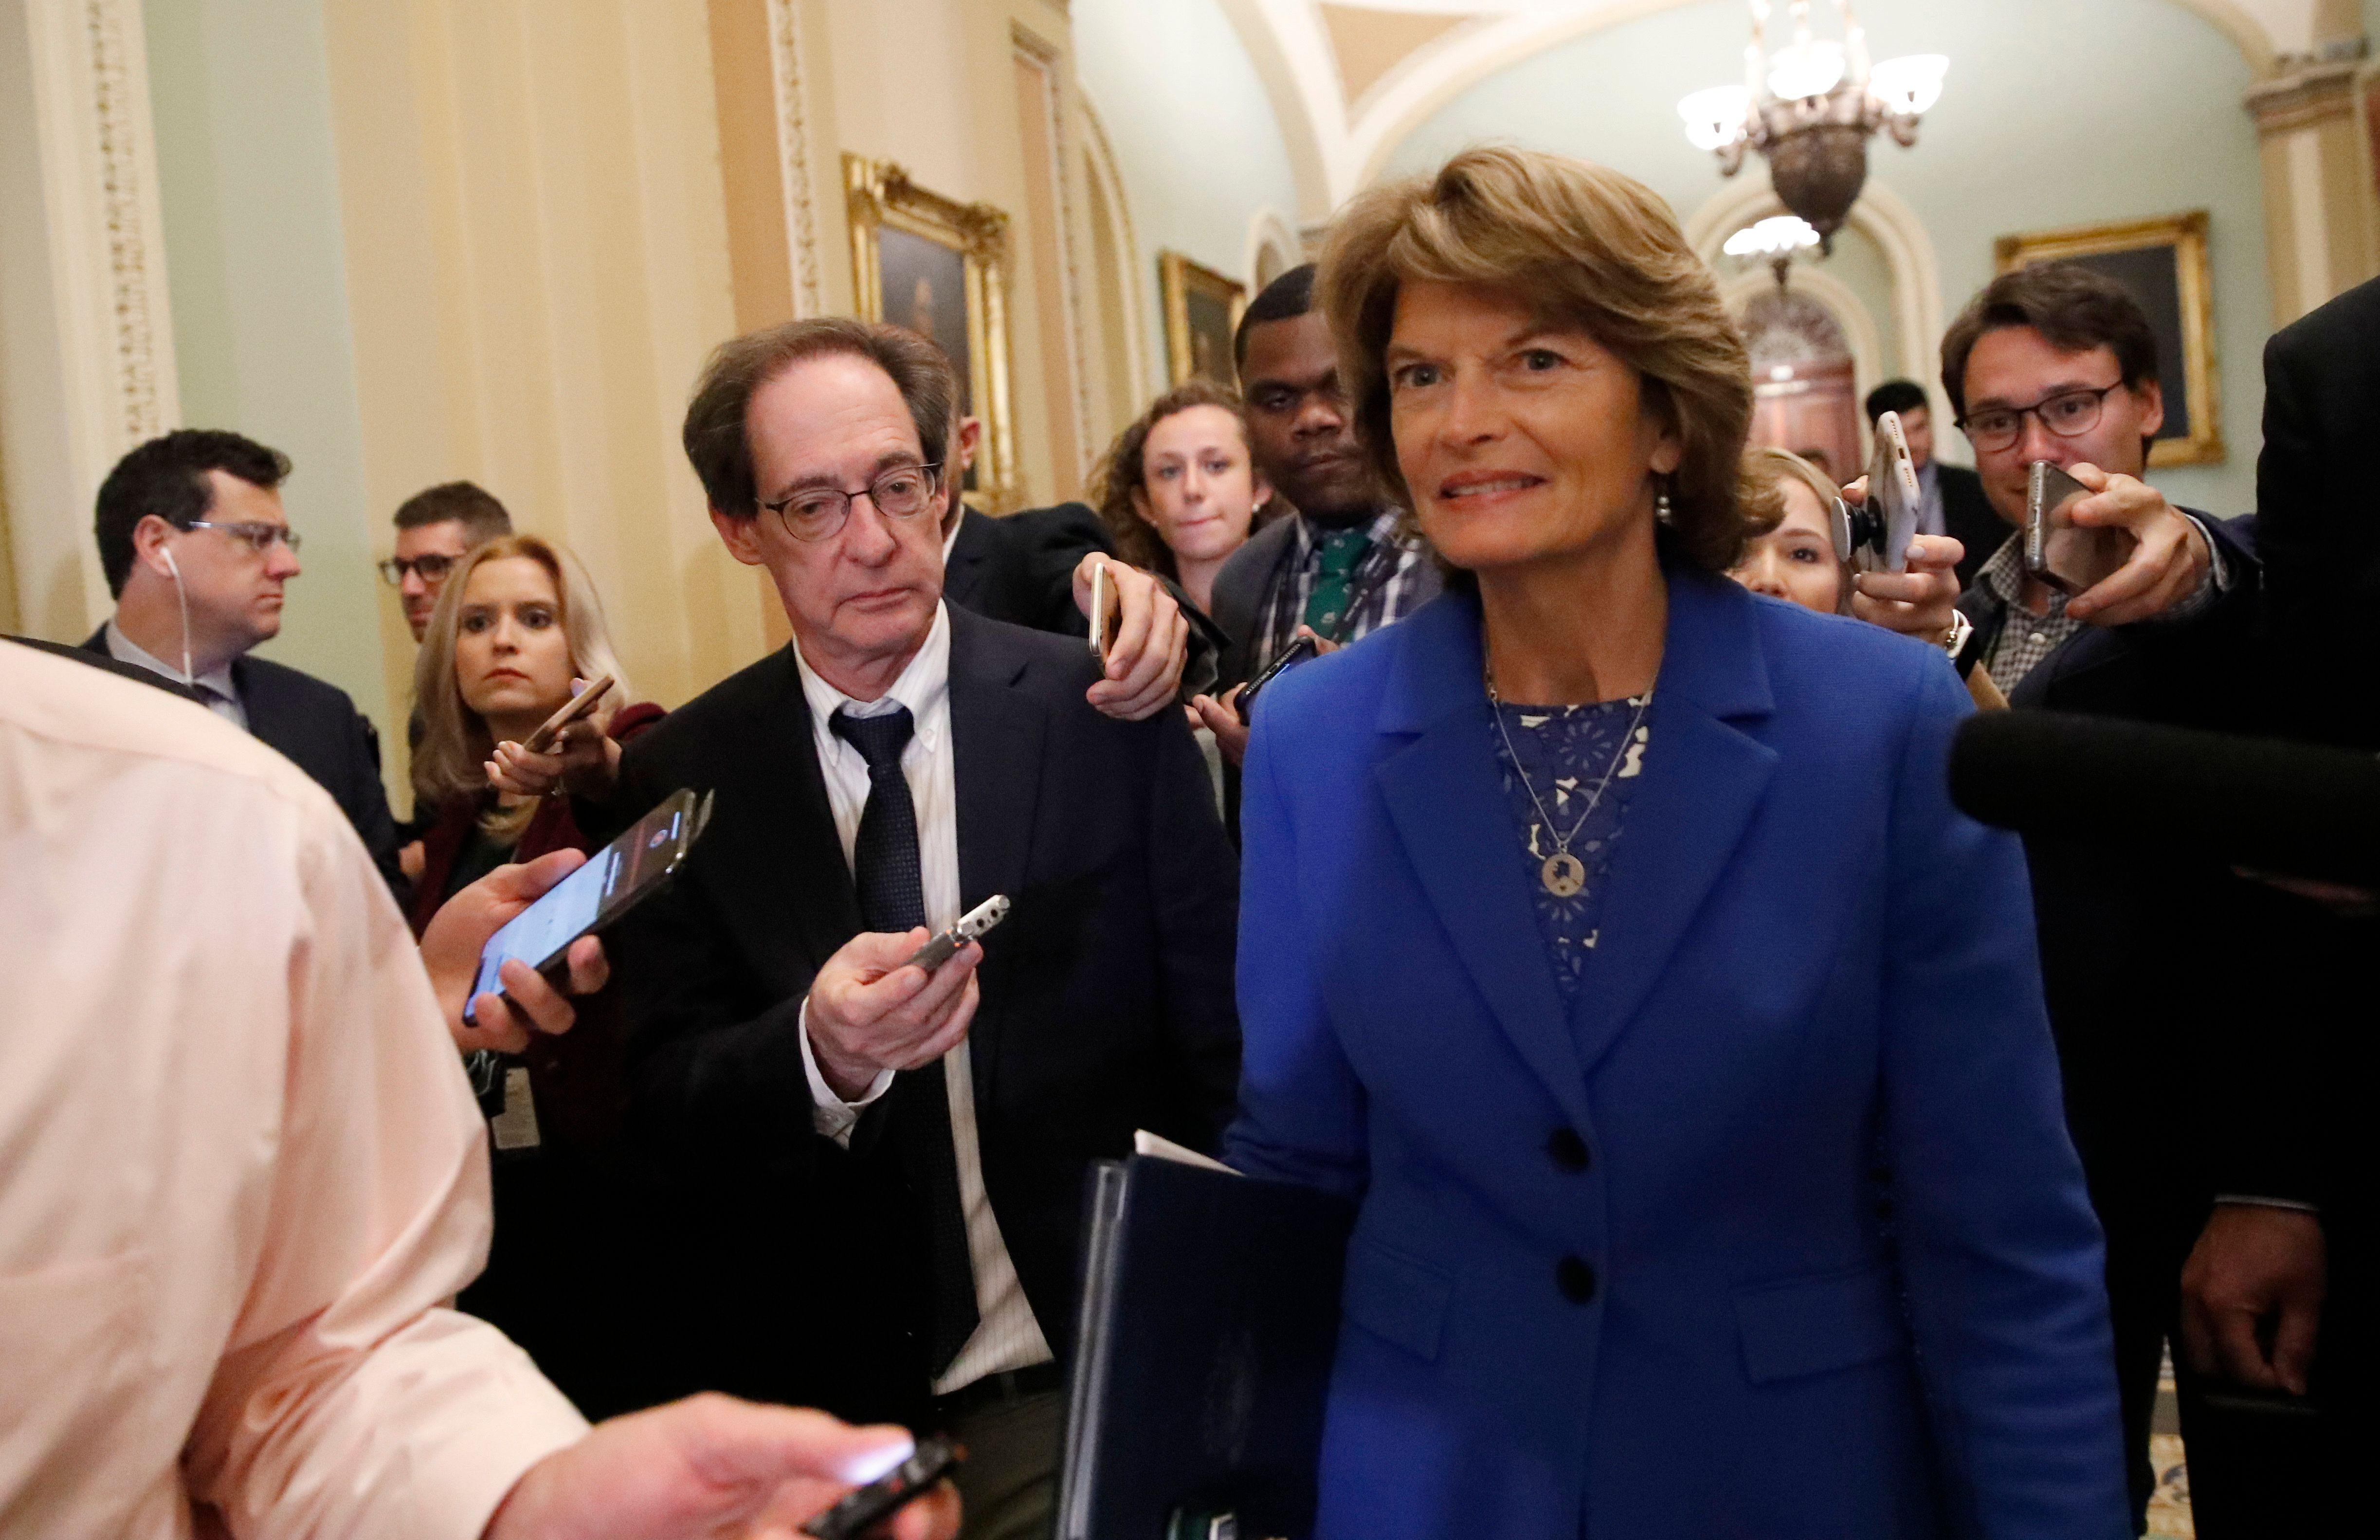 Sen. Lisa Murkowski, R-Alaska, right, walks with journalists as she departs the Republican policy luncheon, on Capitol Hill, Tuesday, Sept. 25, 2018 in Washington. (AP Photo/Alex Brandon)